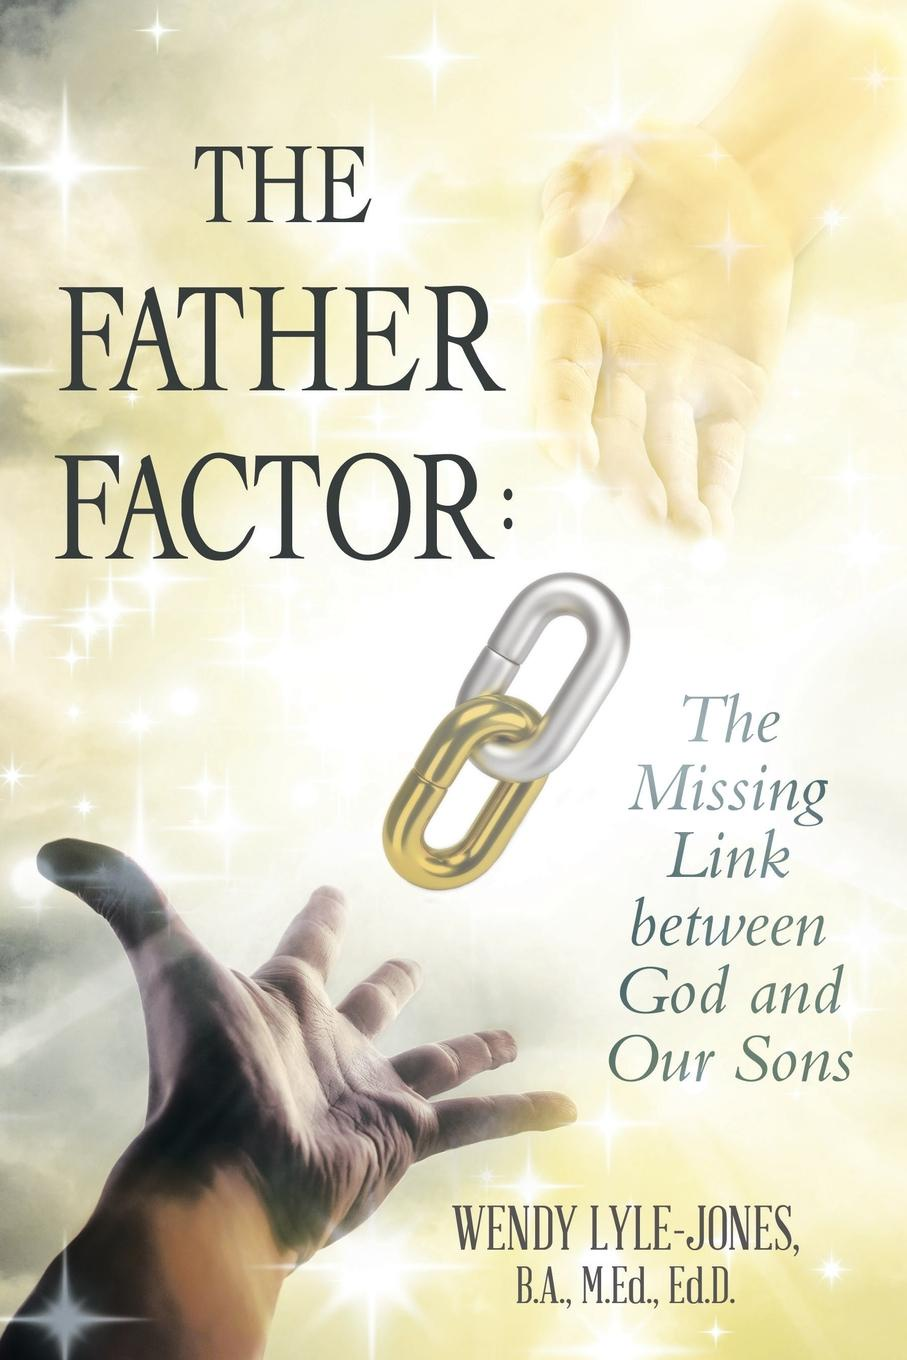 B.A. M.Ed. Ed.D. Wendy Lyle-Jones The Father Factor. The Missing Link between God and Our Sons michael gurian the purpose of boys helping our sons find meaning significance and direction in their lives